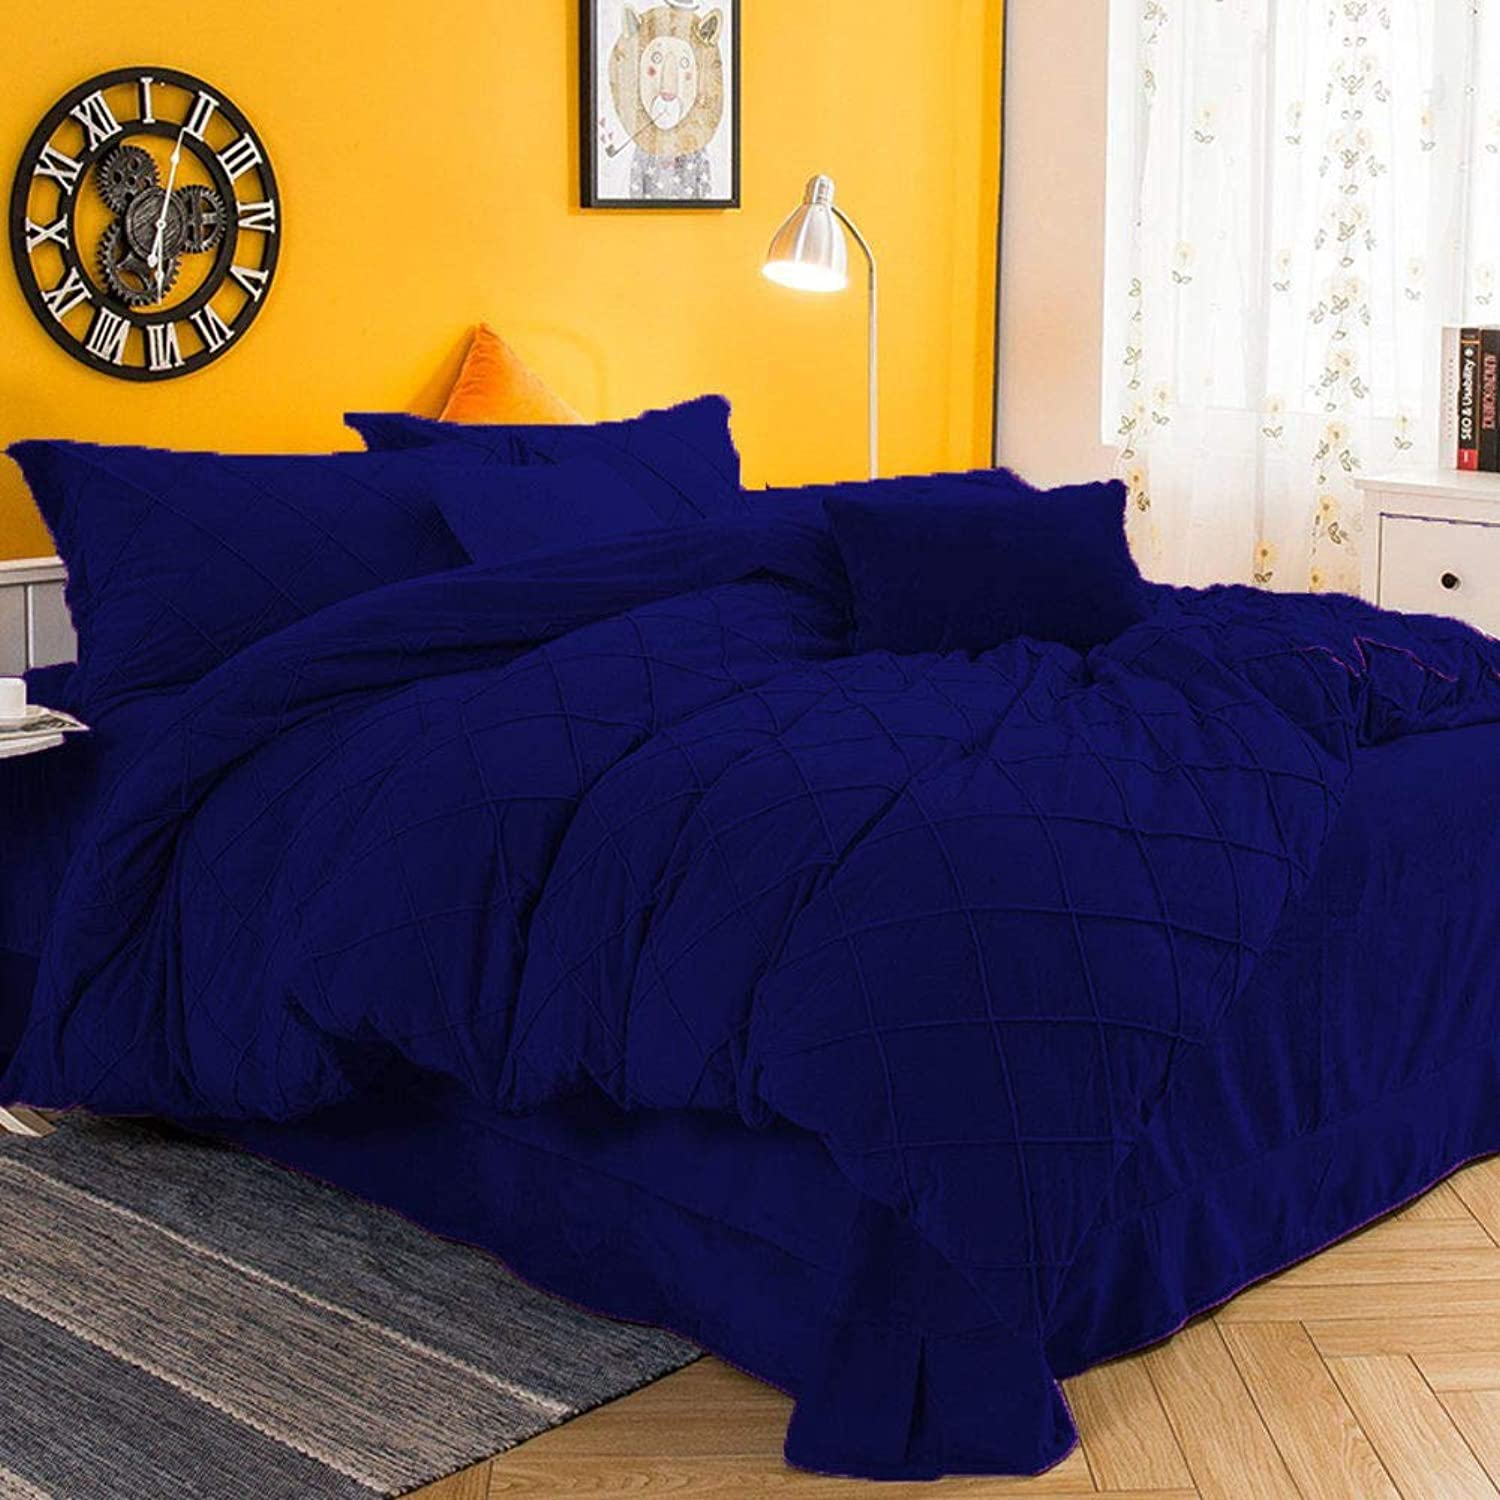 3pc Pintuck Royal bluee color Velvet Duvet Cover Set Available Twin XL